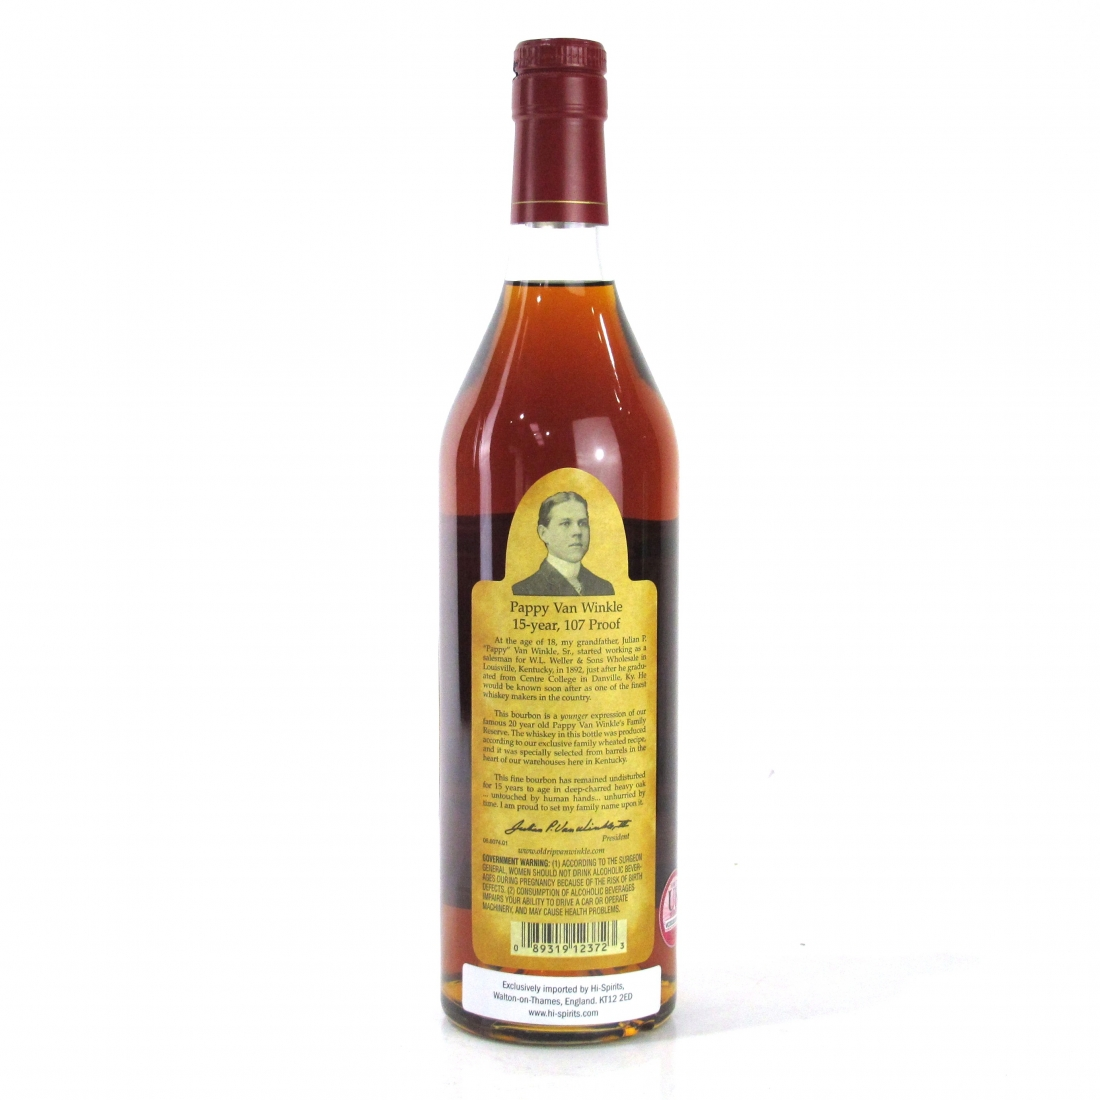 Pappy Van Winkle 15 Year Old Family Reserve